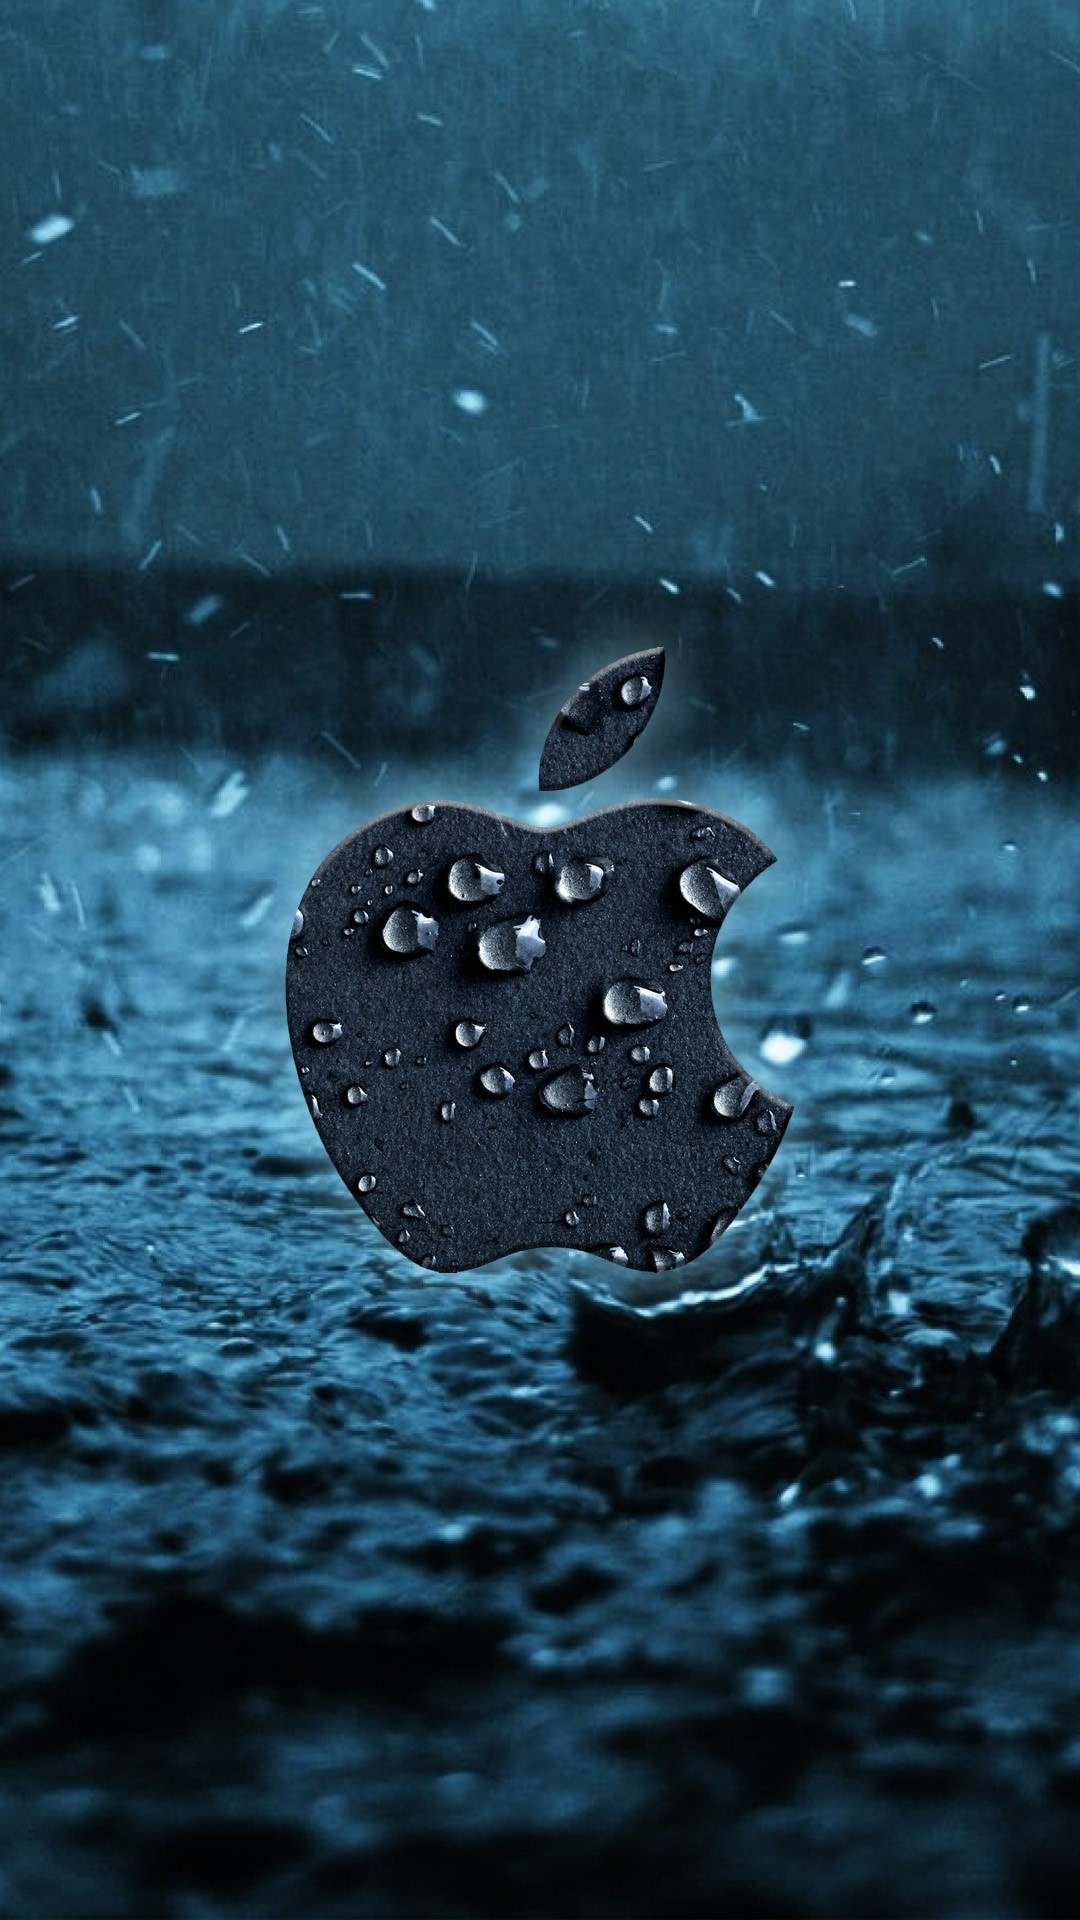 Rain Wallpapers 82 Pictures